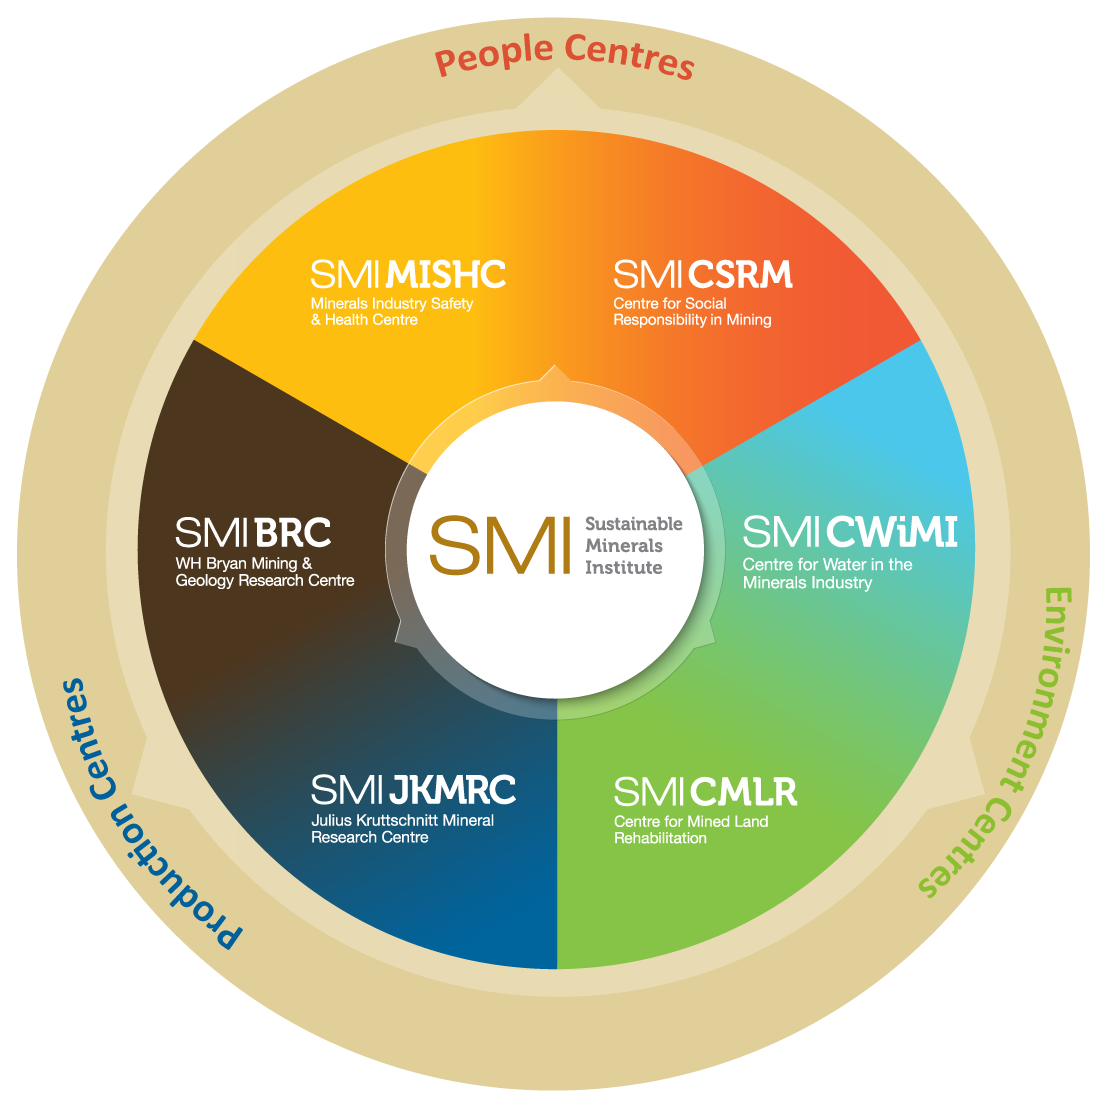 SMI Research Centres